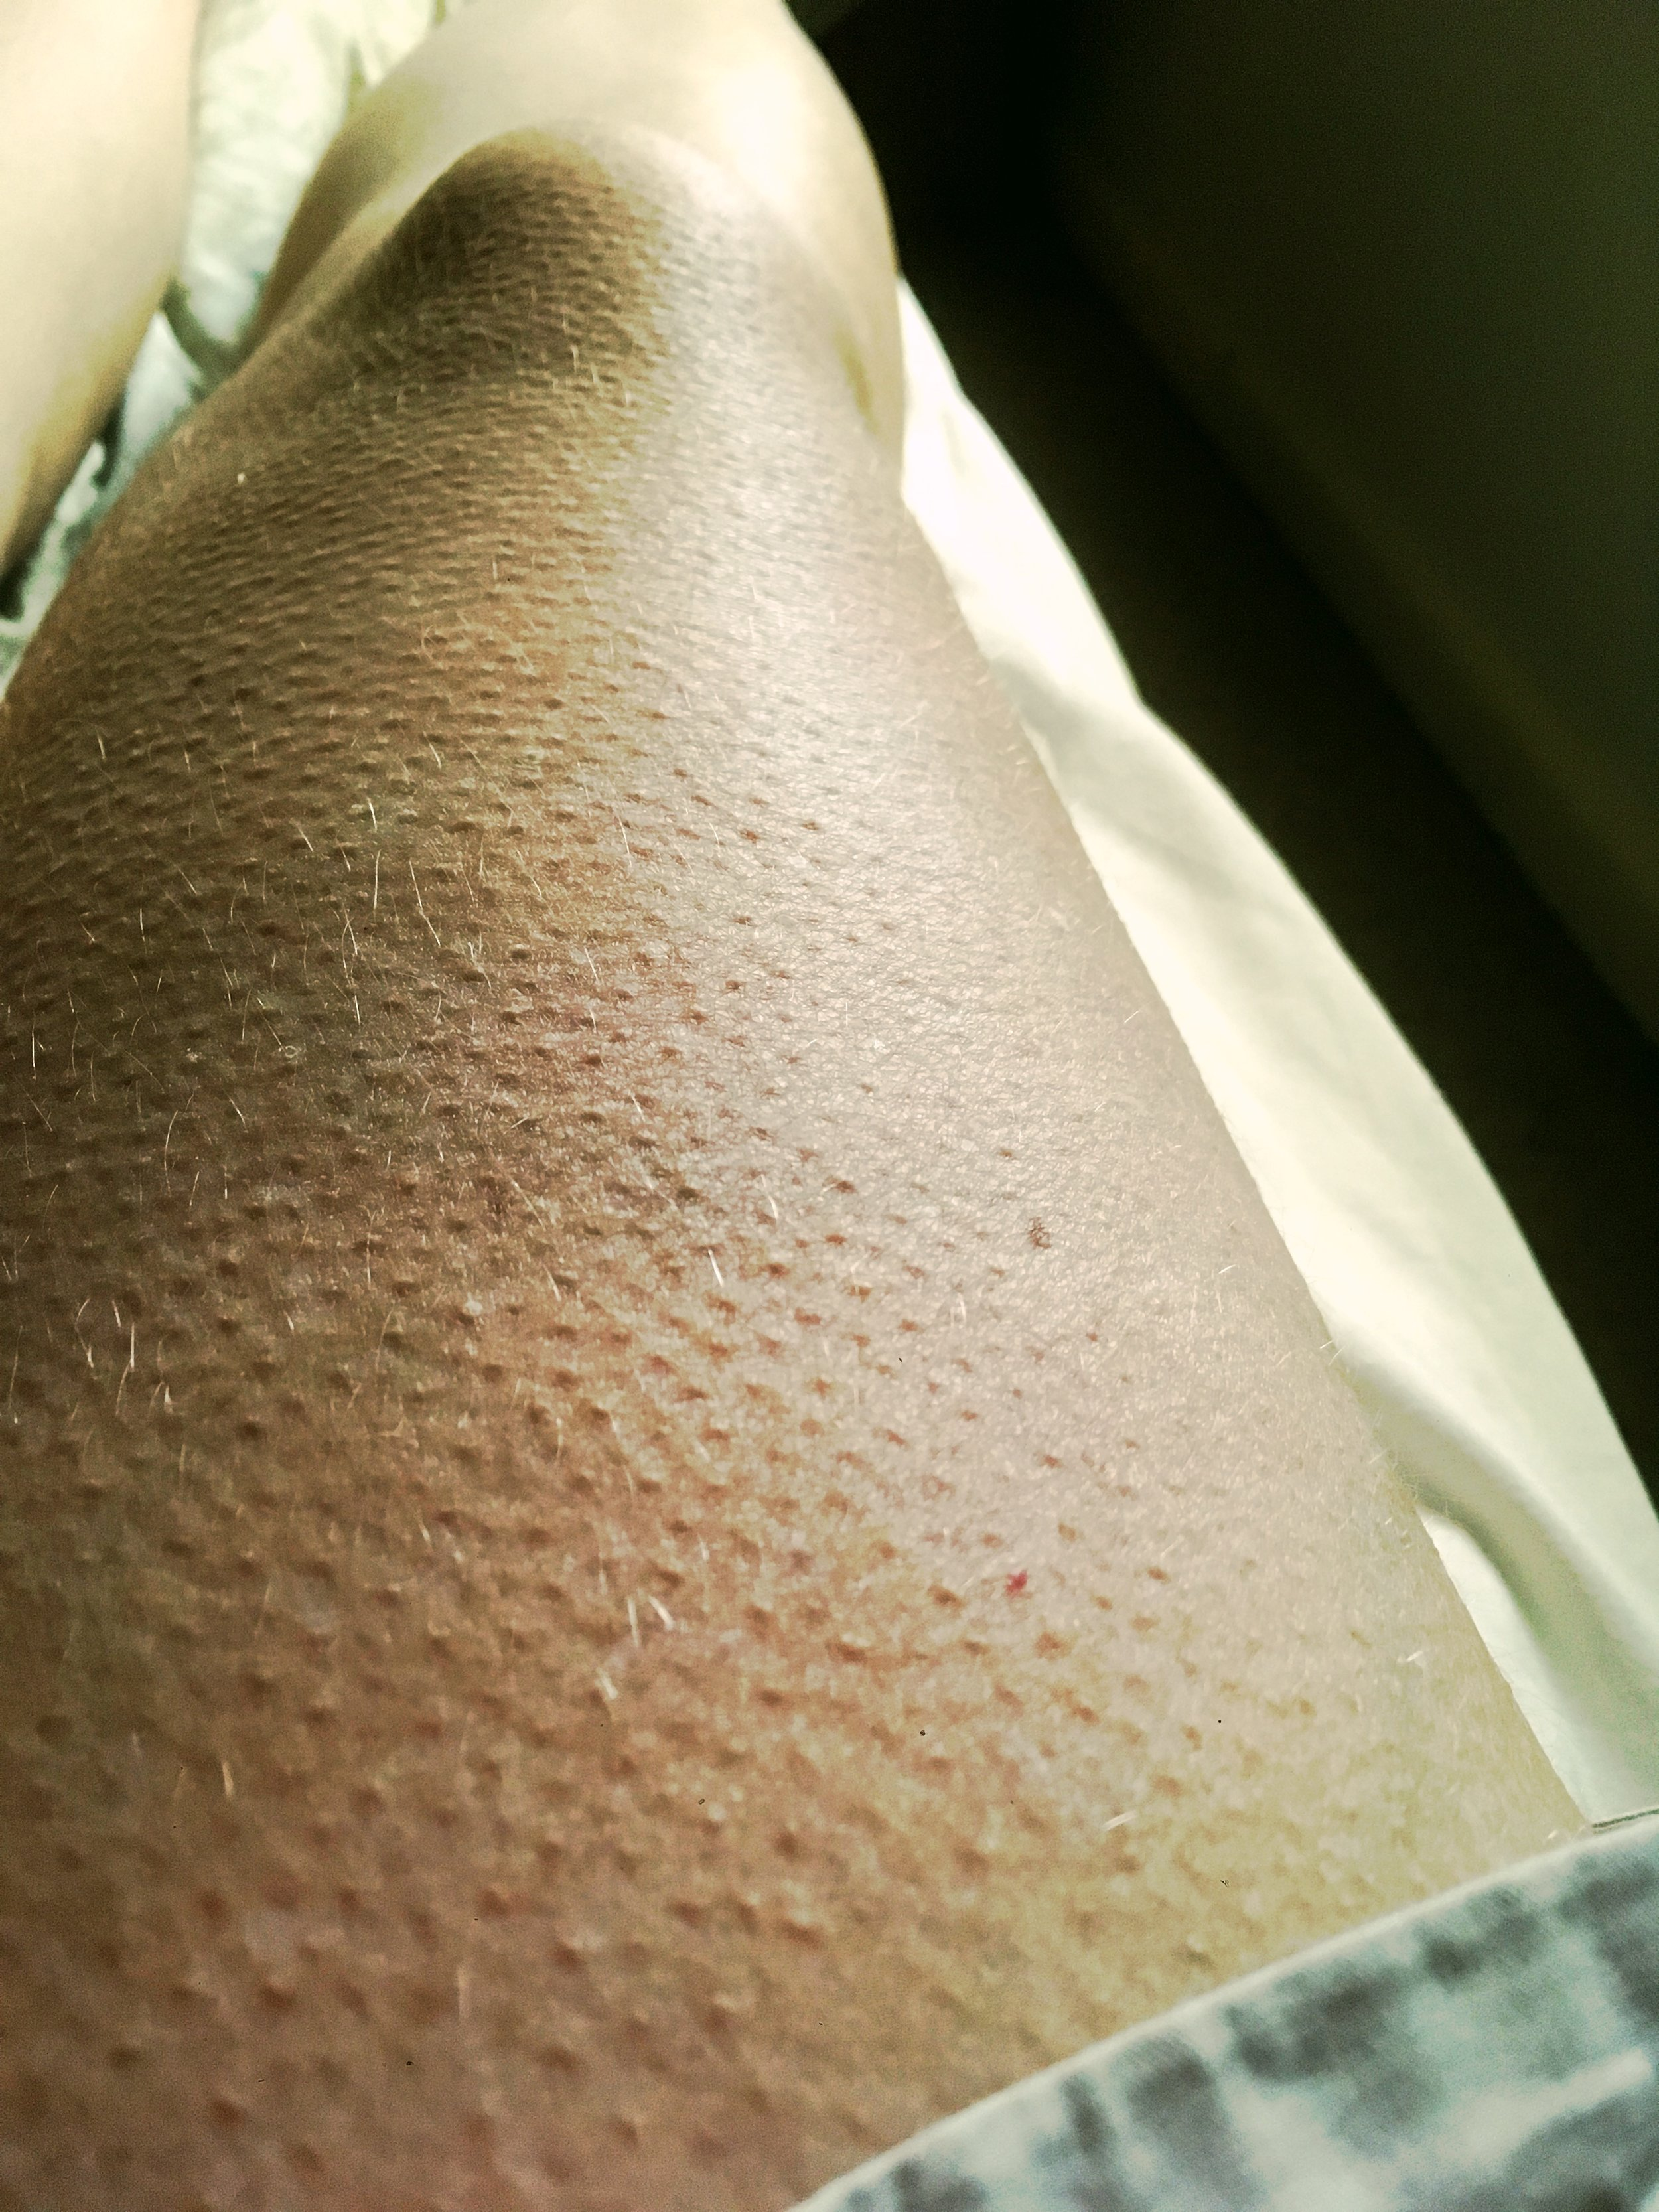 Goosebumps are real, my leg on a warm day